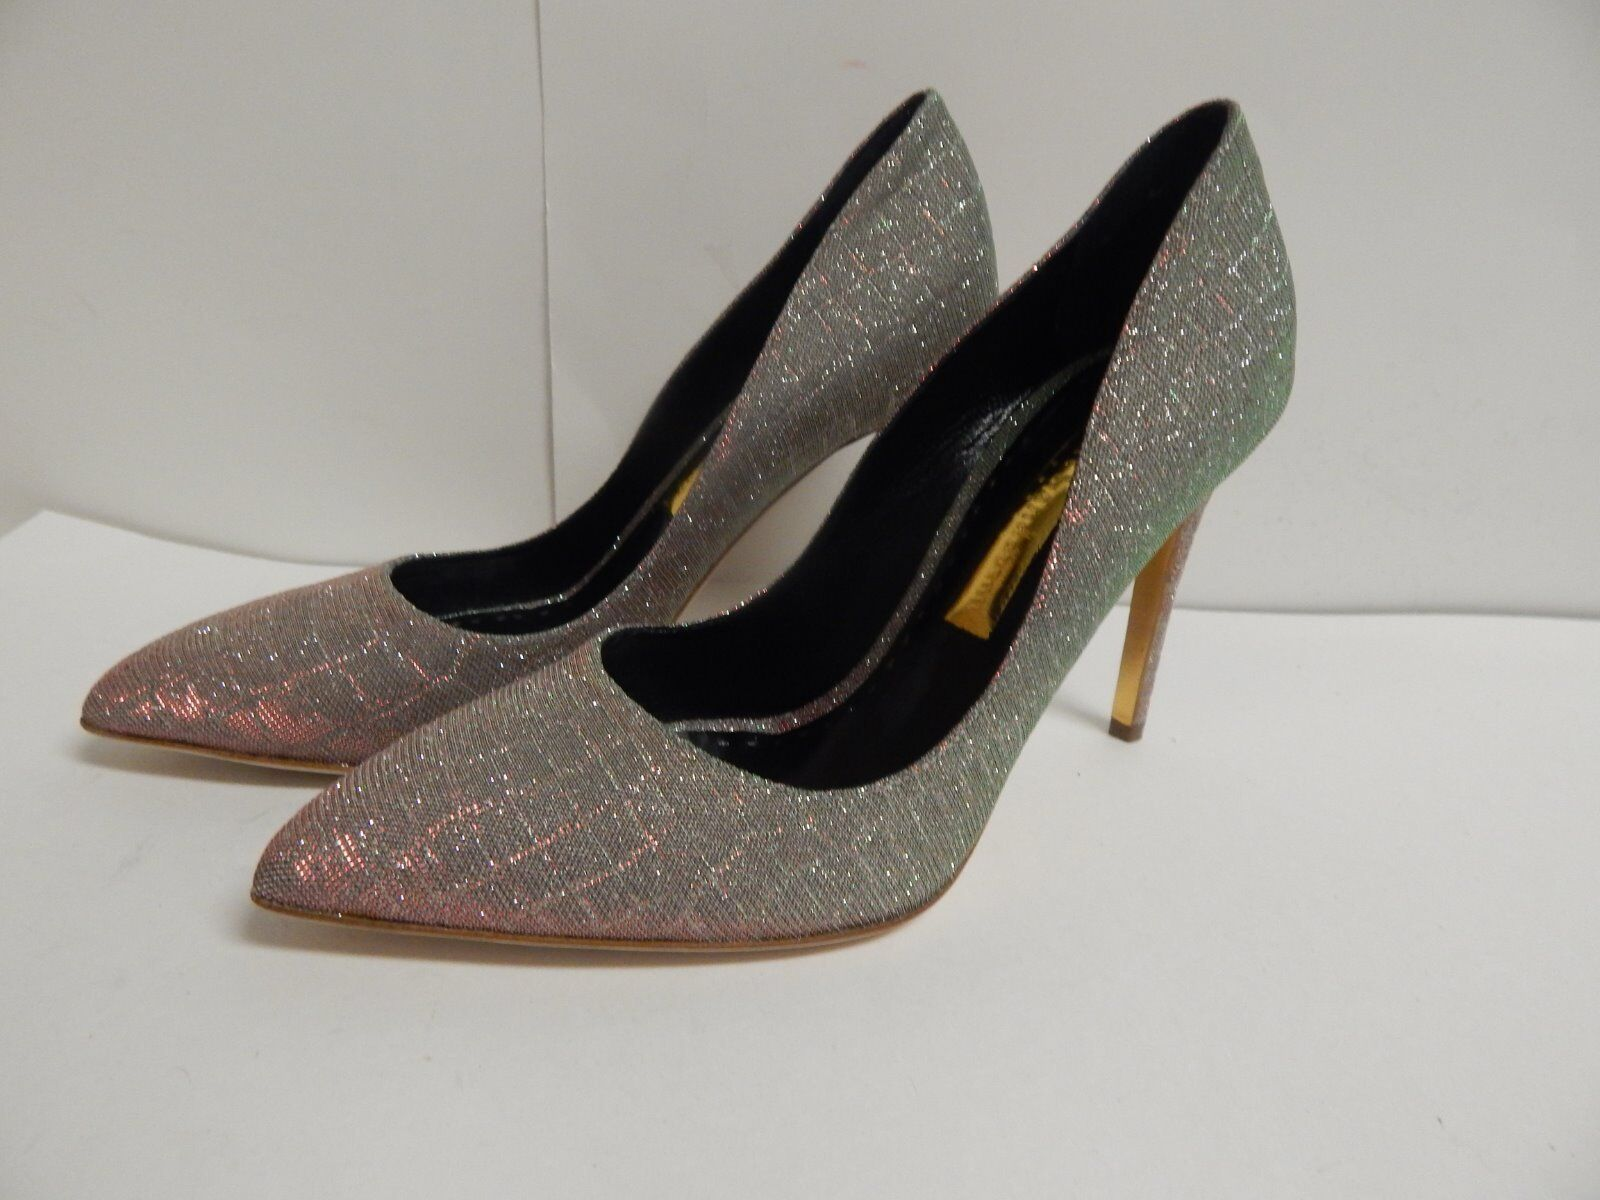 Rupert Sanderson Malory Pointed Toe High Heel Pumps 37.5 US 7.5 M  New W out Box